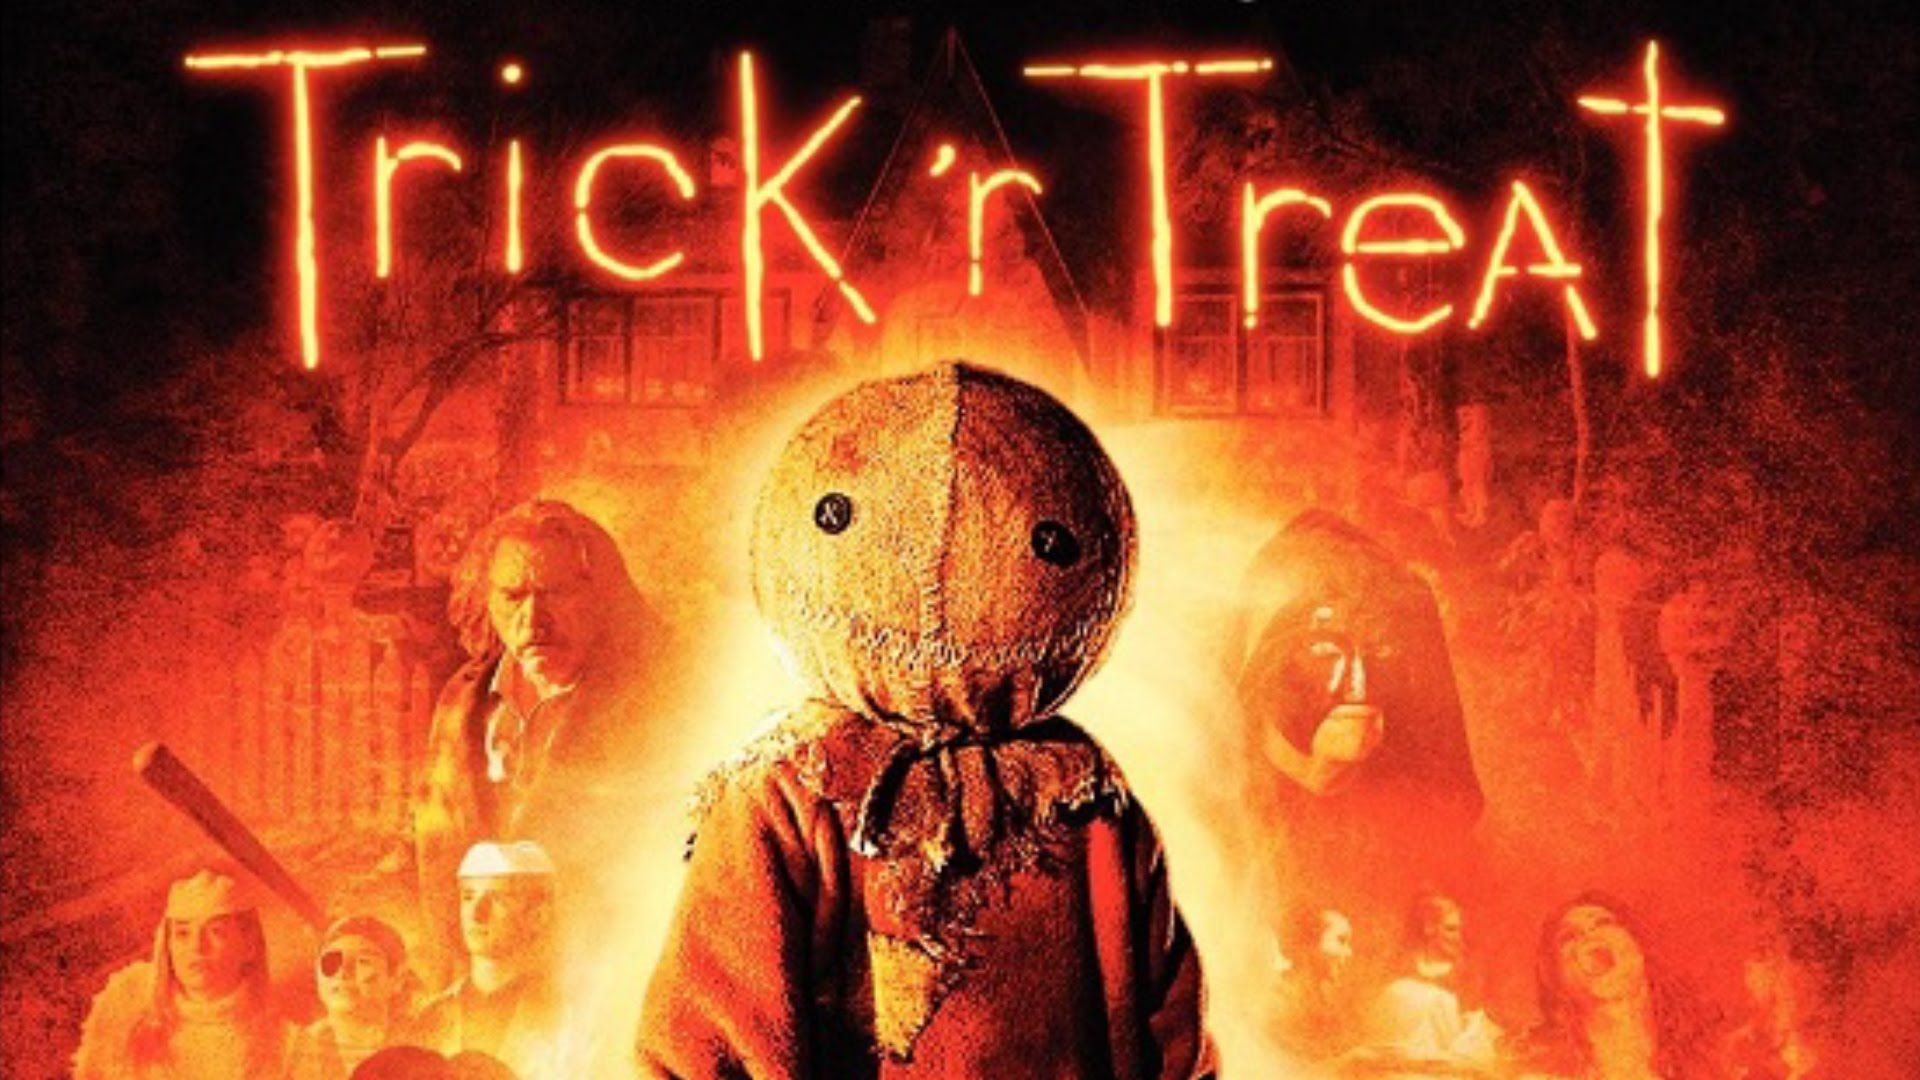 Trick R Treat Wallpapers And Images Wallpapers Pictures Photos